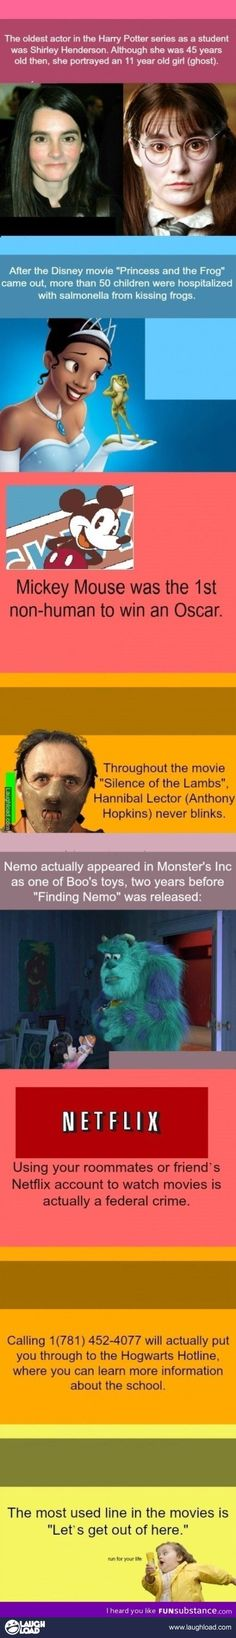 Cool movie facts